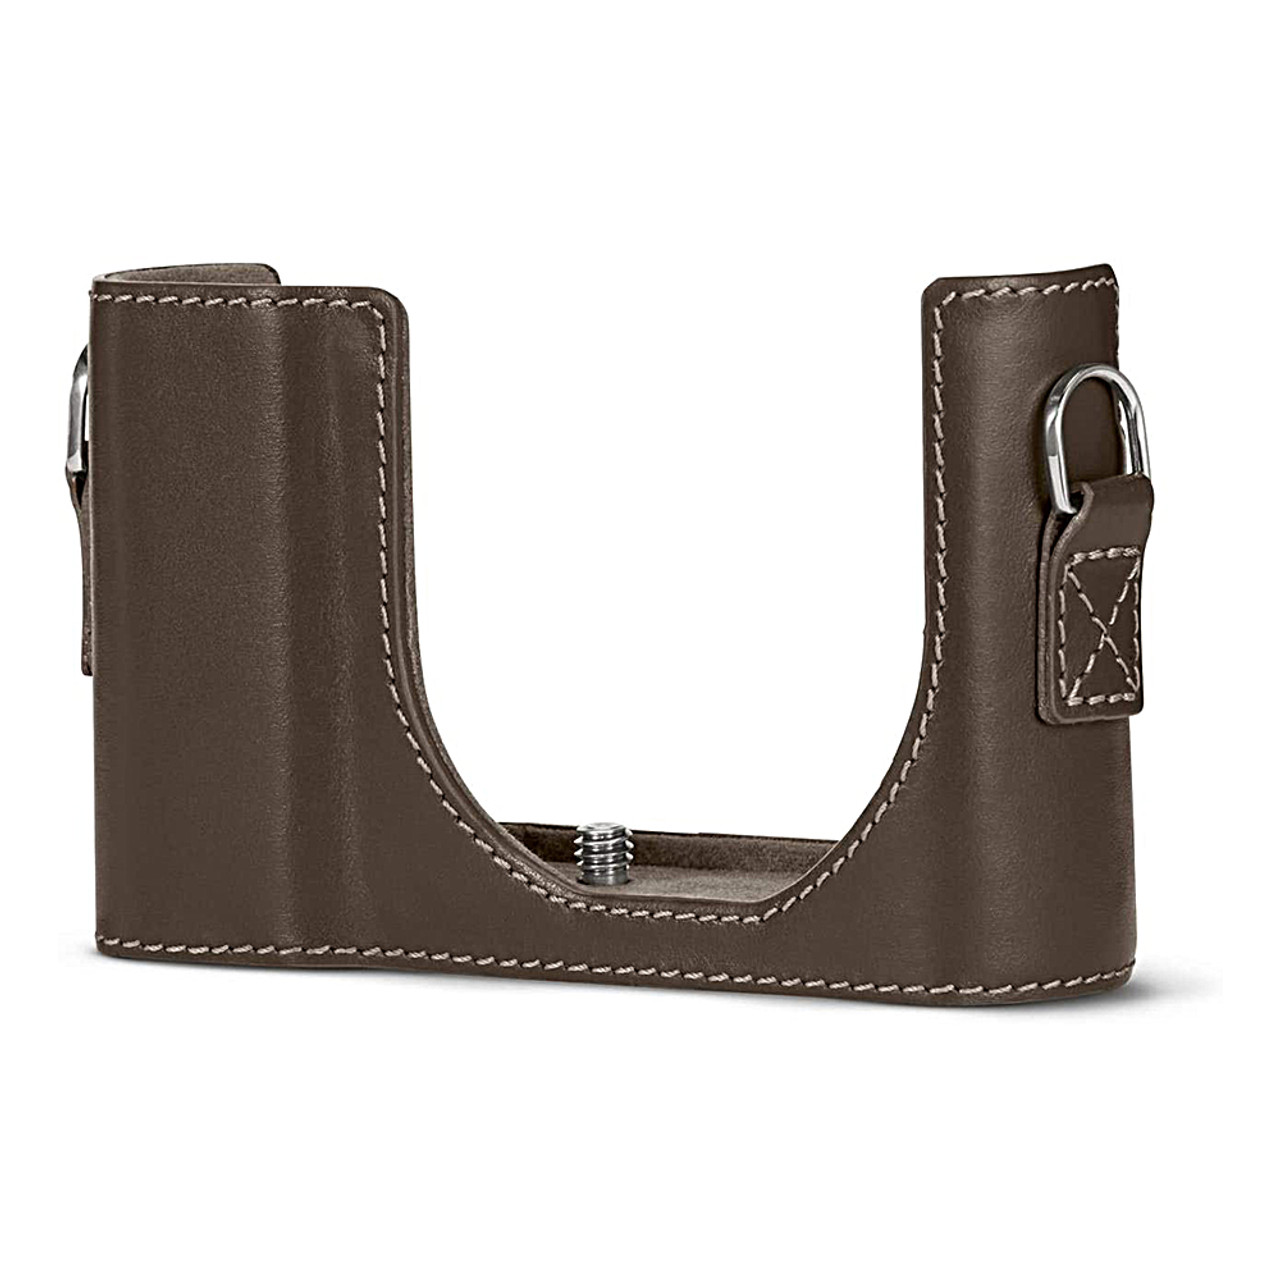 LEICA C-LUX PRETECTOR LEATHER TAUPE